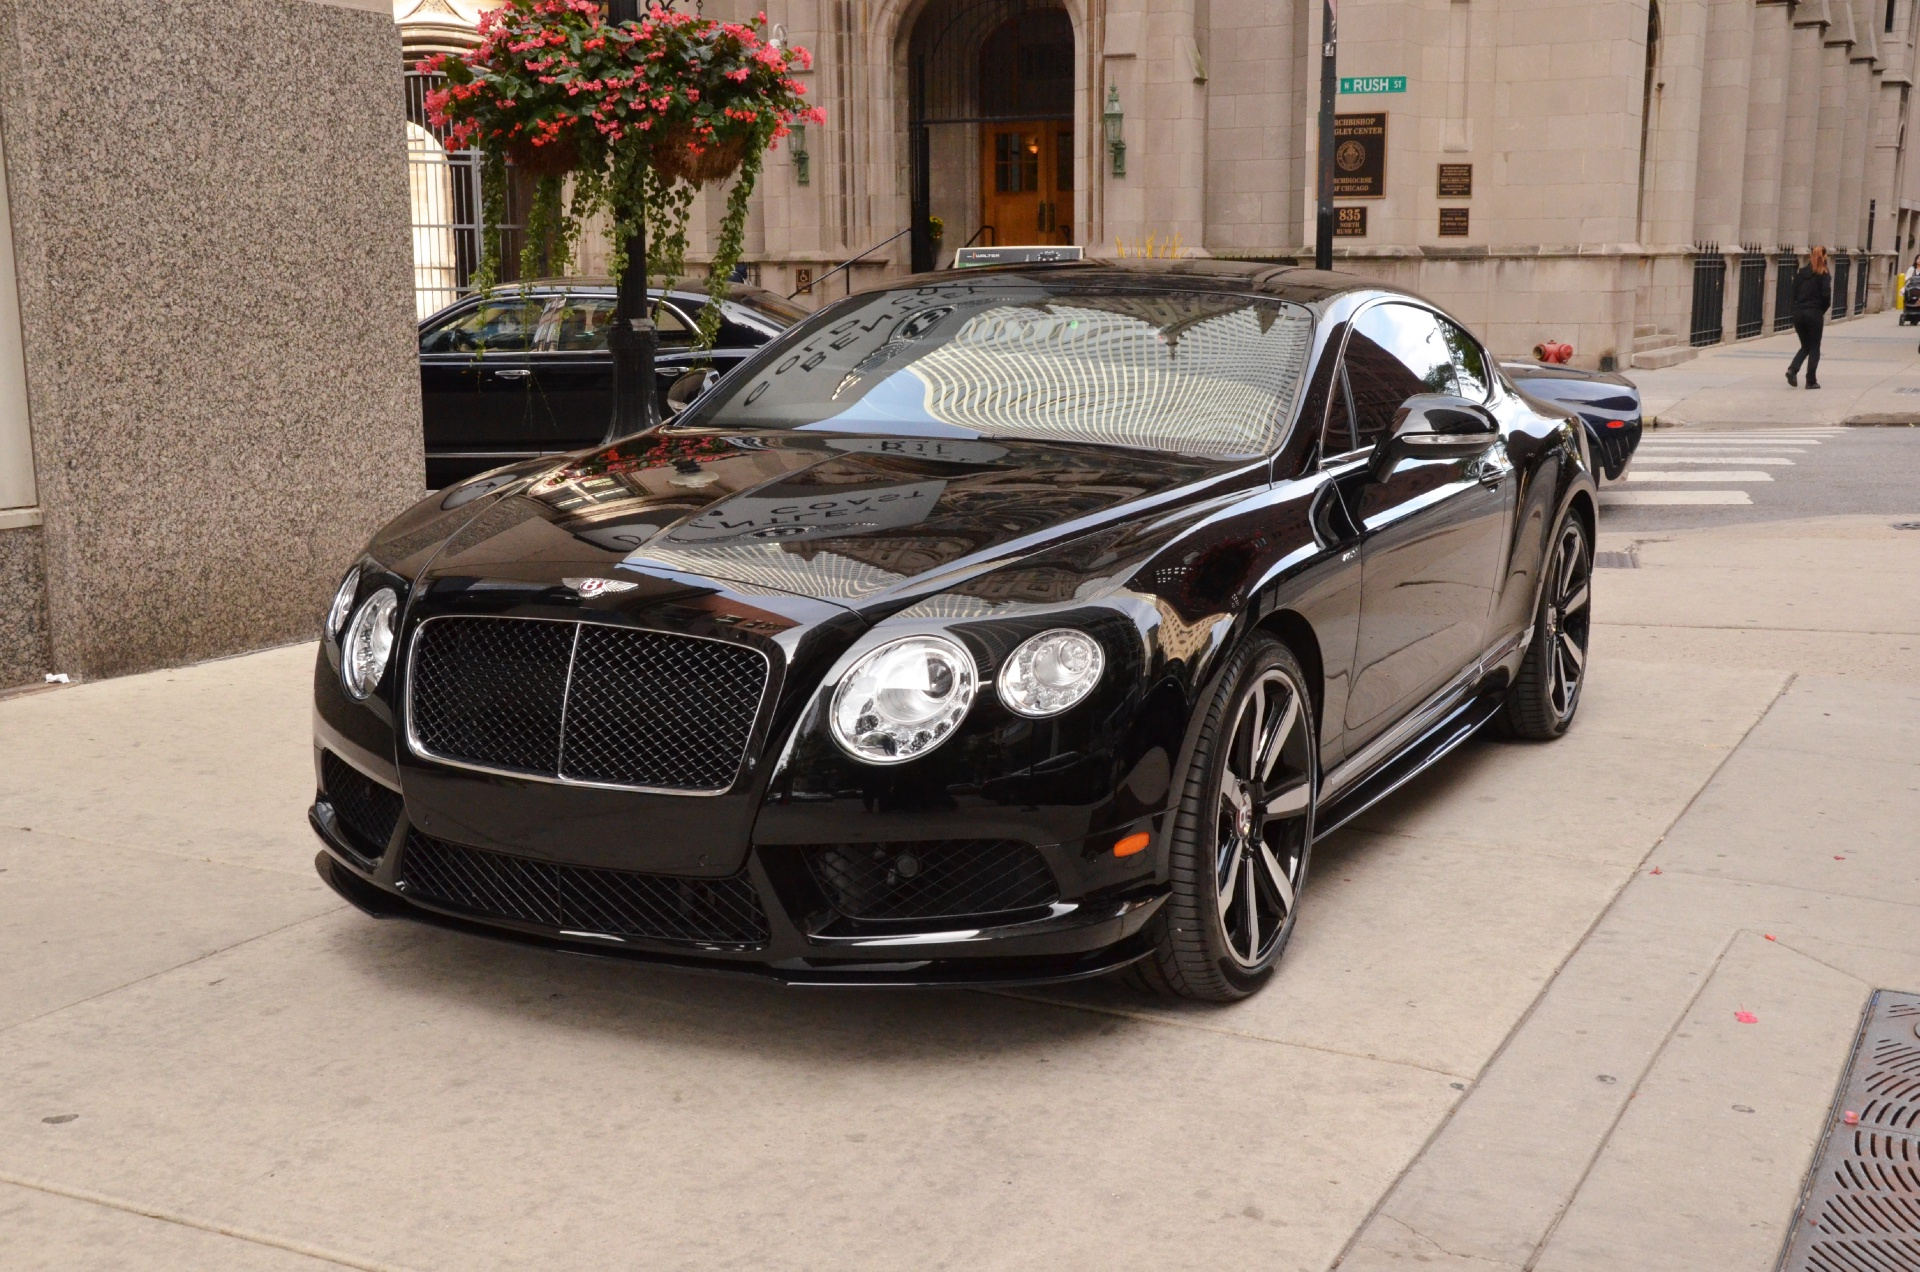 2014 bentley continental gt v8 s stock b632a for sale near new 2014 bentley continental gt v8 s chicago il vanachro Choice Image